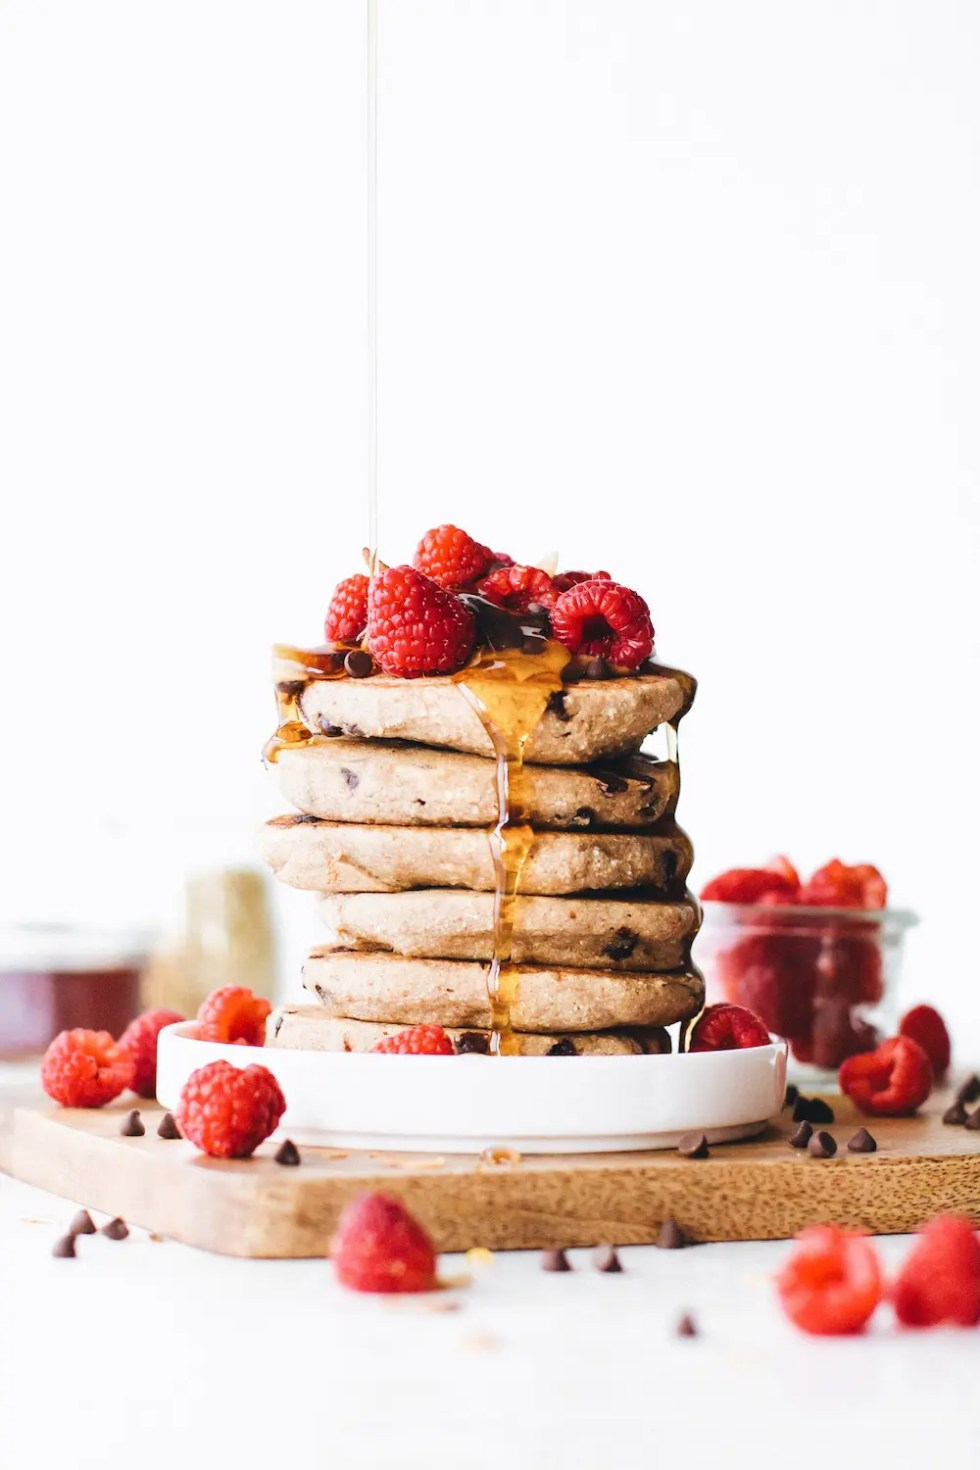 Chocolate Chip Vegan Buckwheat Pancakes